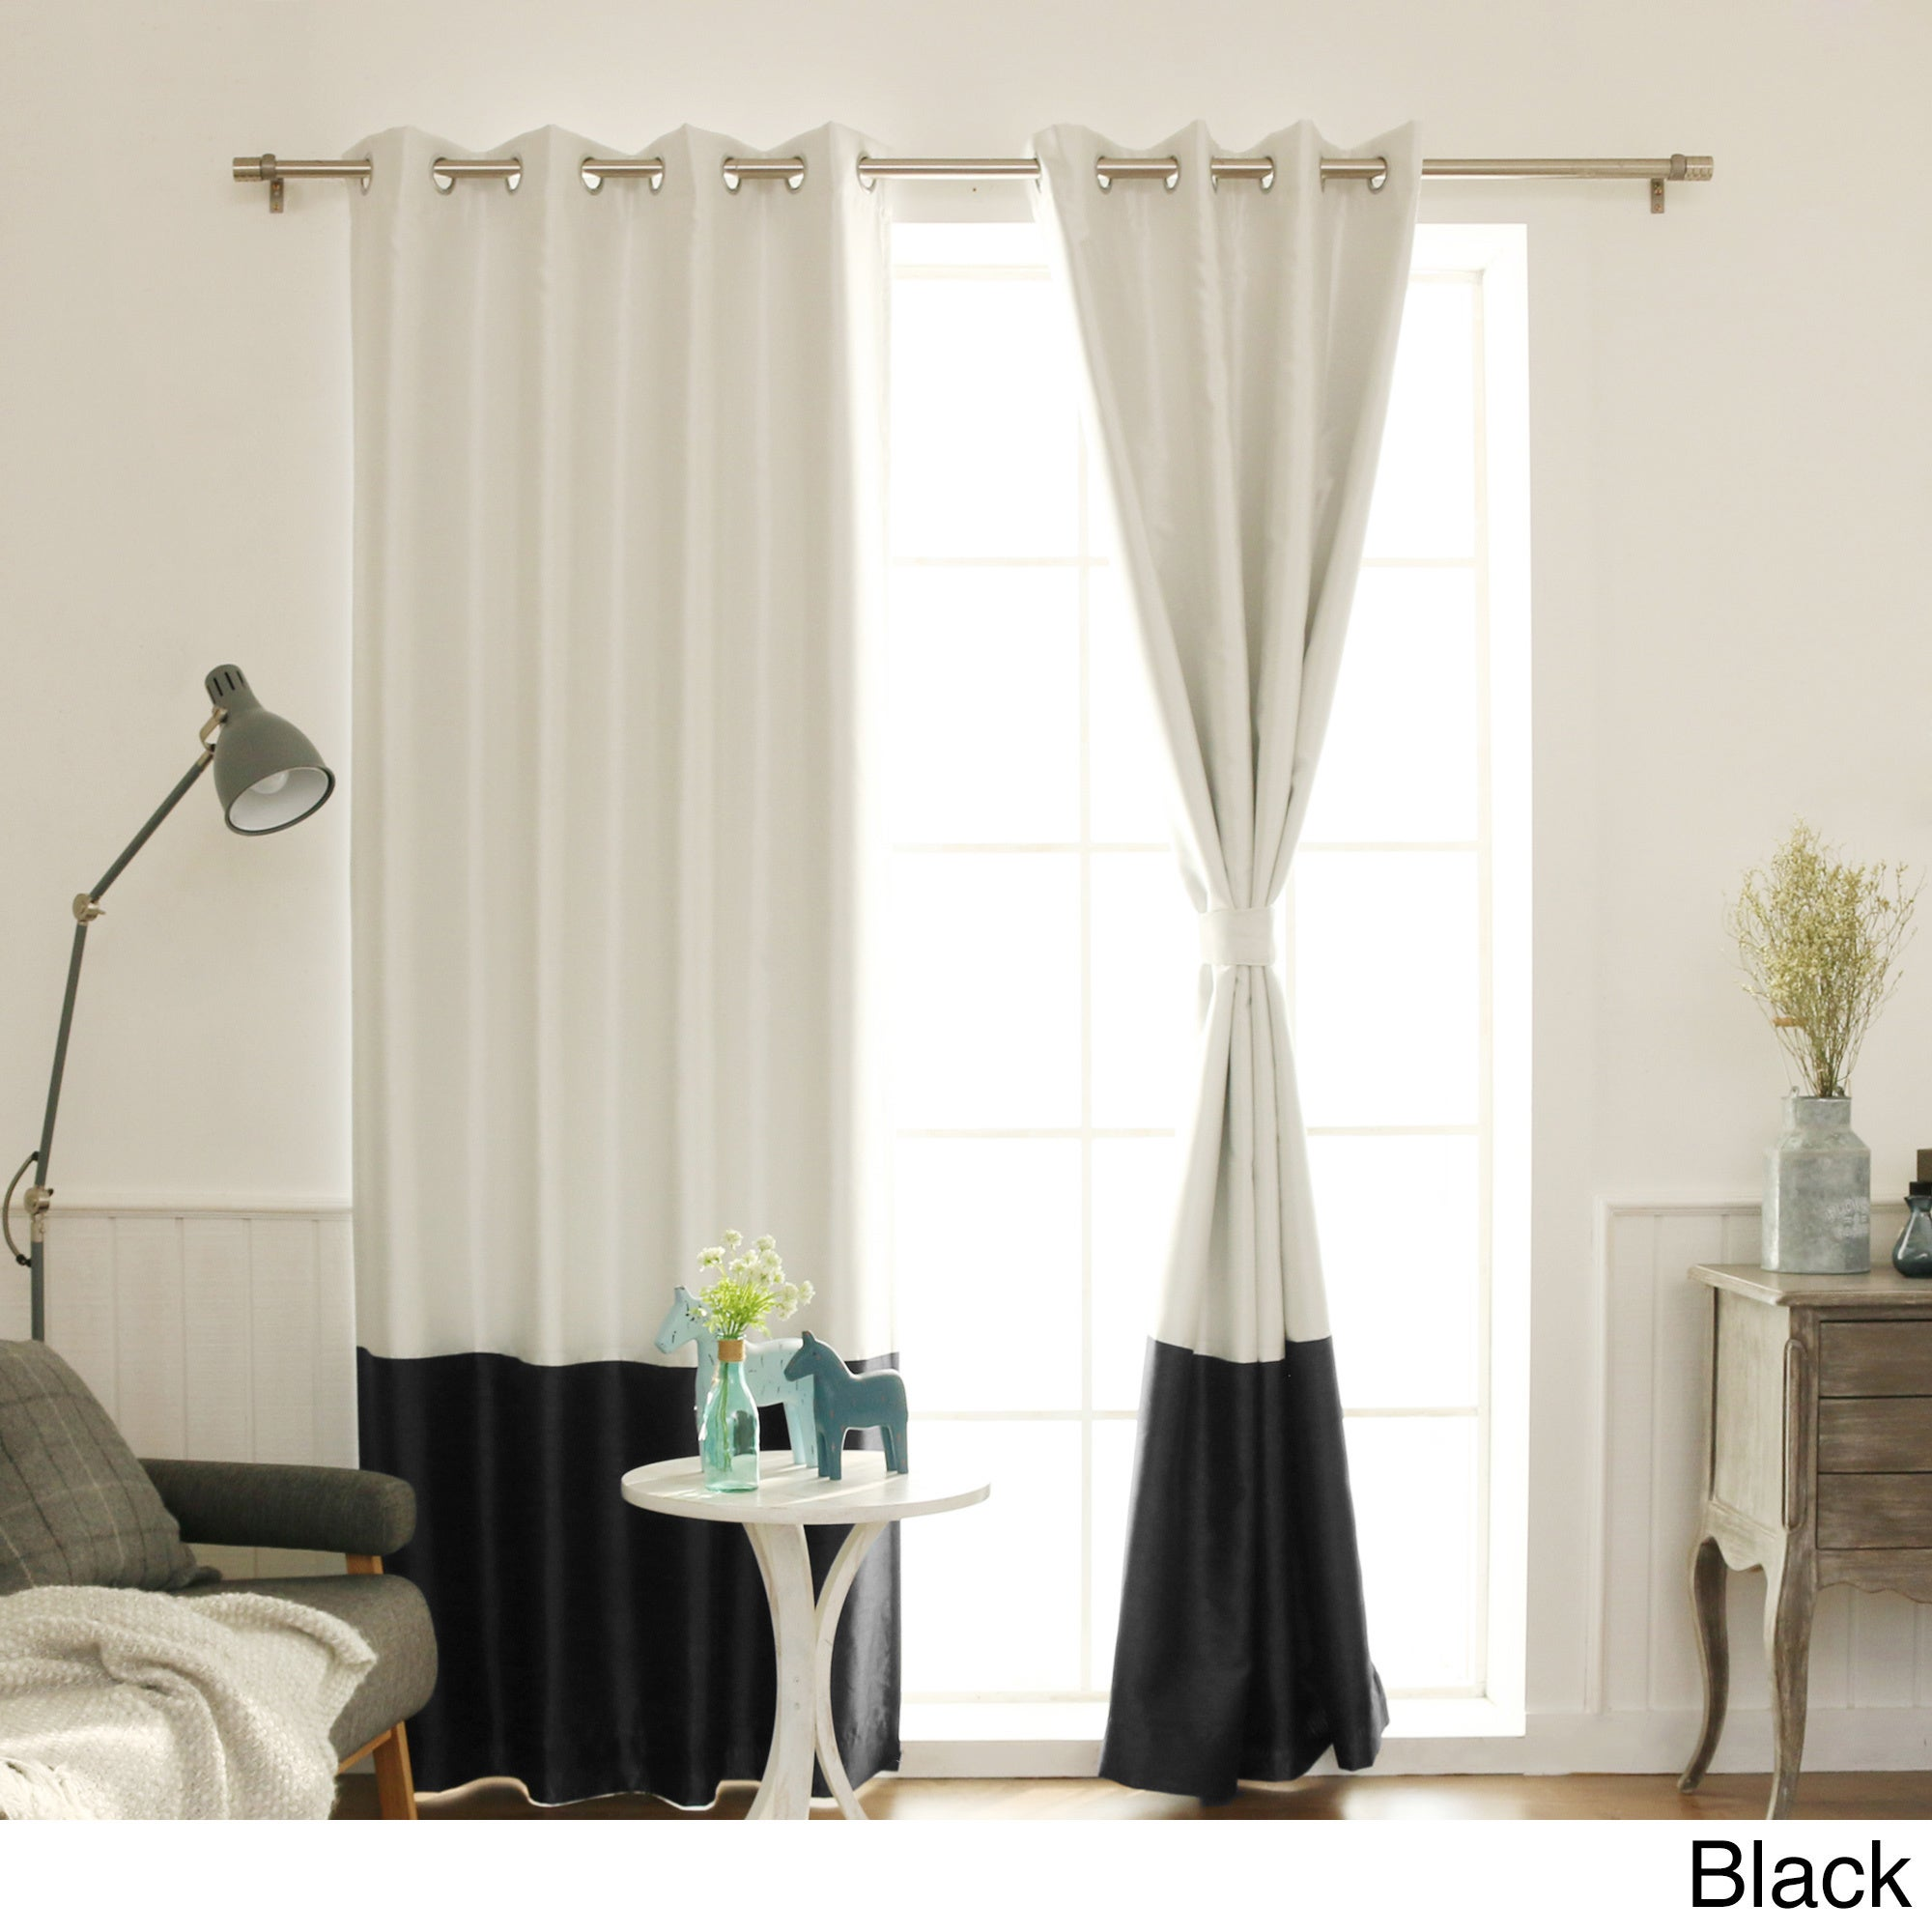 chevron panels quincy panel striped black blackout and white curtains curtain